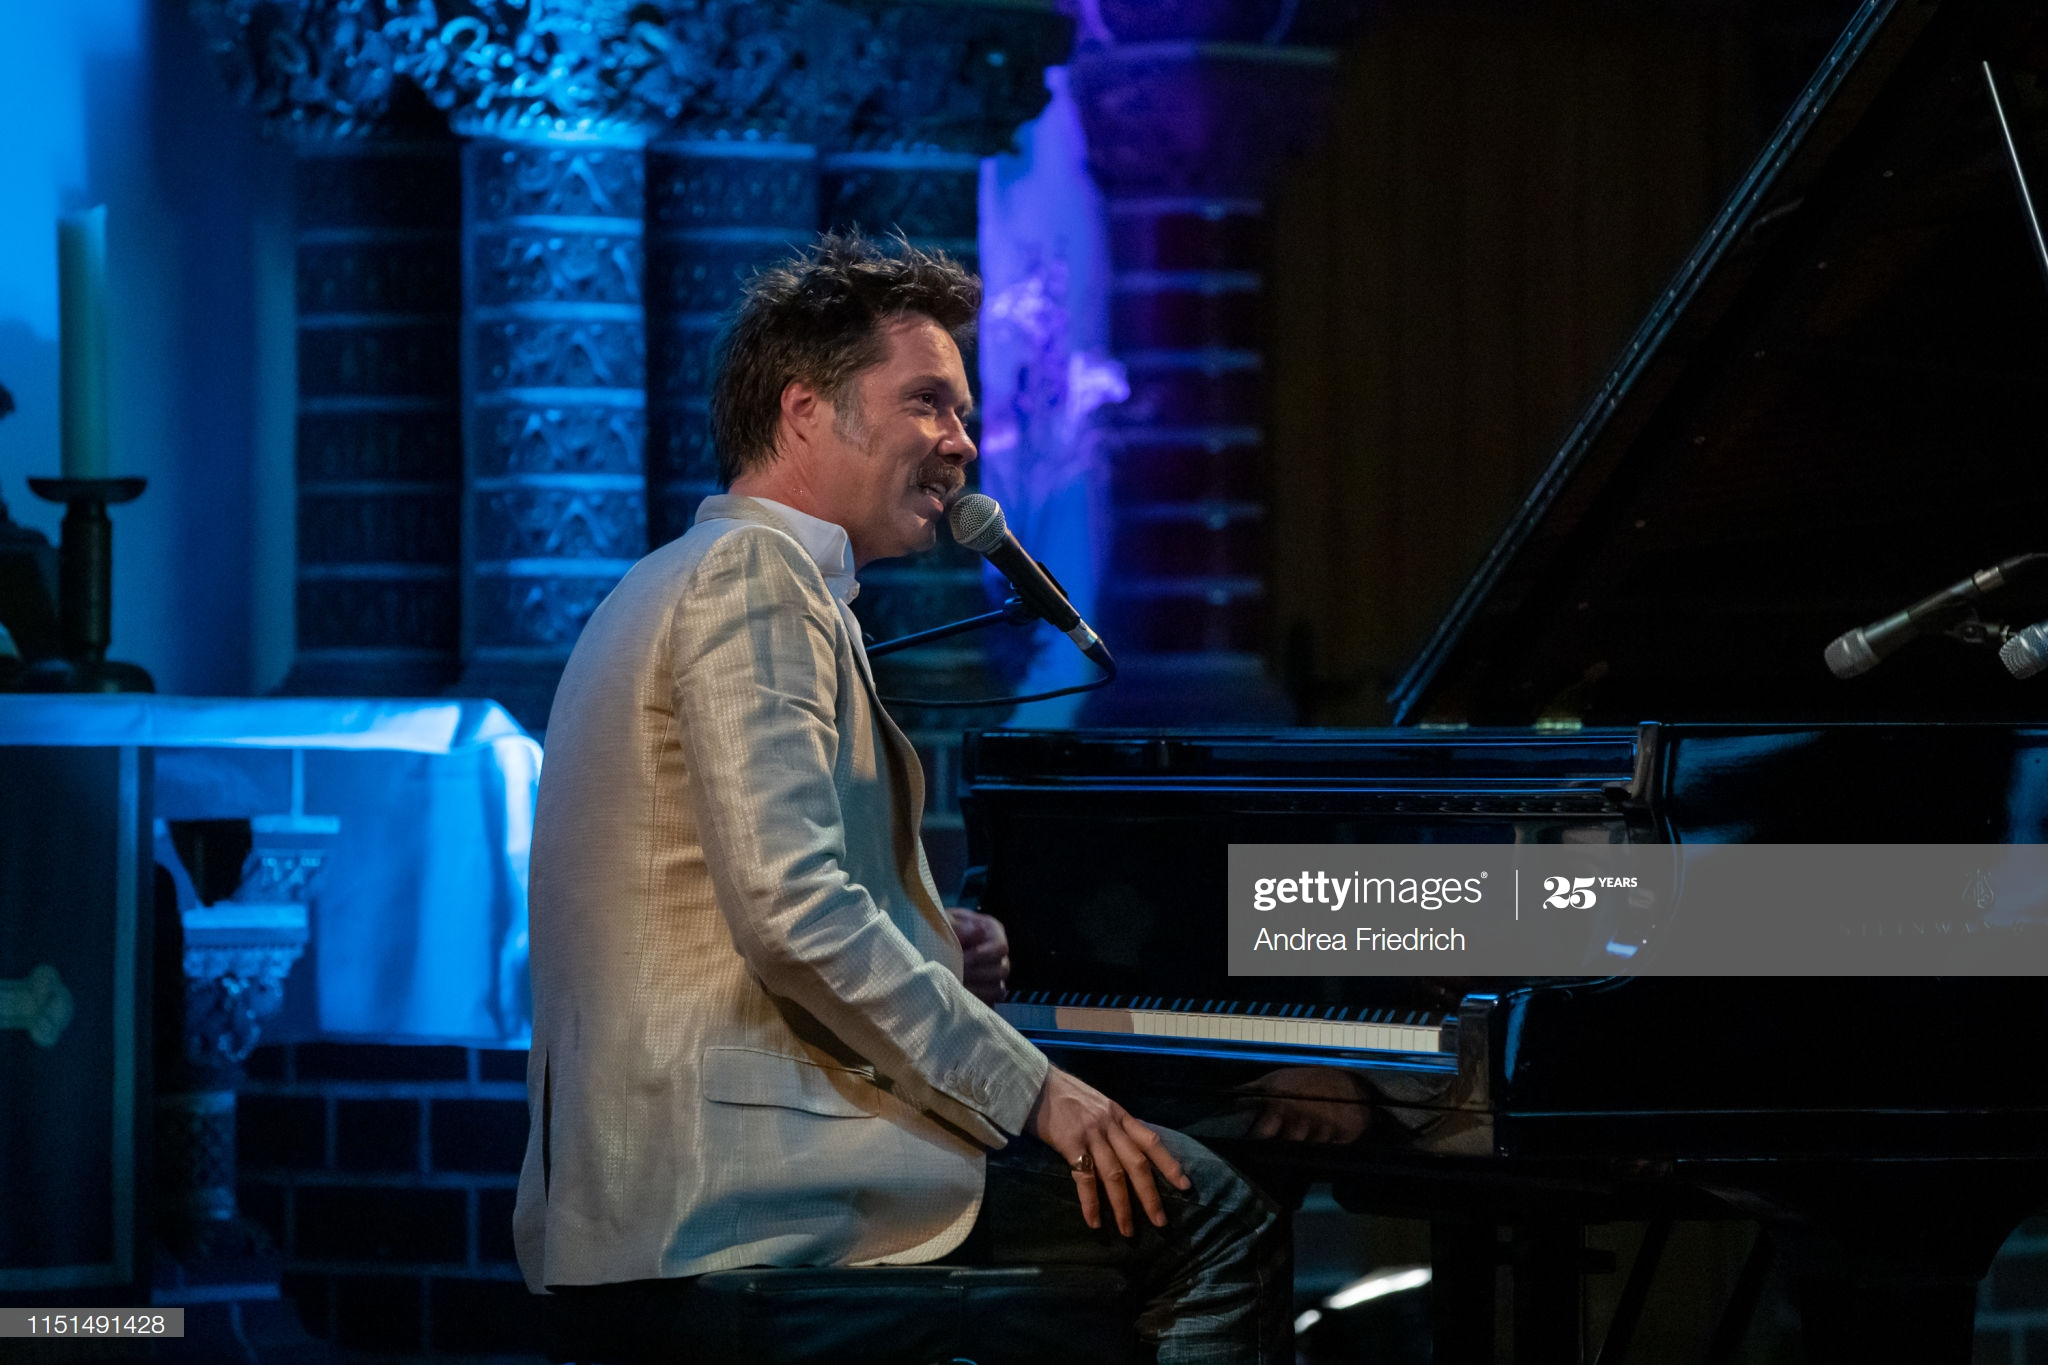 BERLIN, GERMANY - JUNE 22: Rufus Wainwright performs live on stage during a concert at Passionskirche on June 22, 2019 in Berlin, Germany. (Photo by Andrea Friedrich/Redferns)